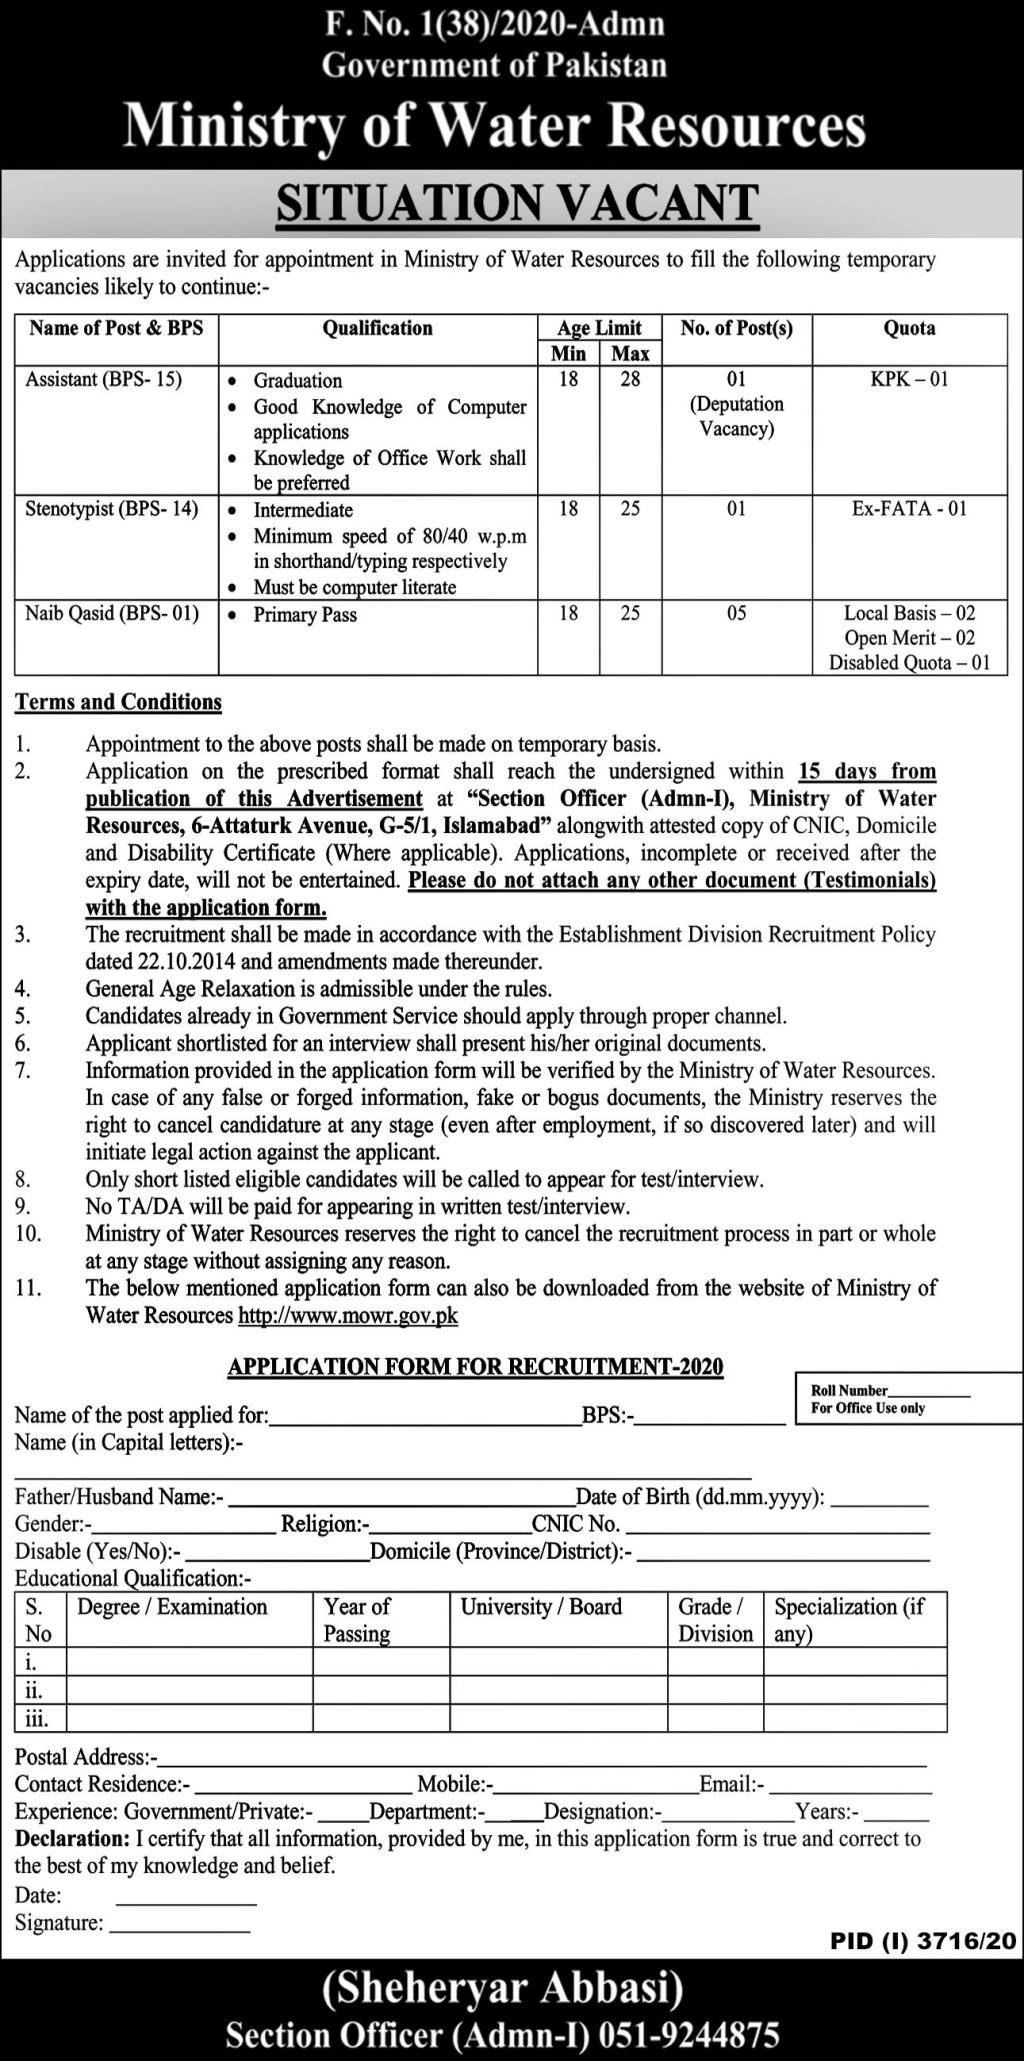 Download Job Application Form - www.mowr.gov.pk - Latest Govt Jobs 2021 - Ministry of Water Resources MOWR Jobs 2021